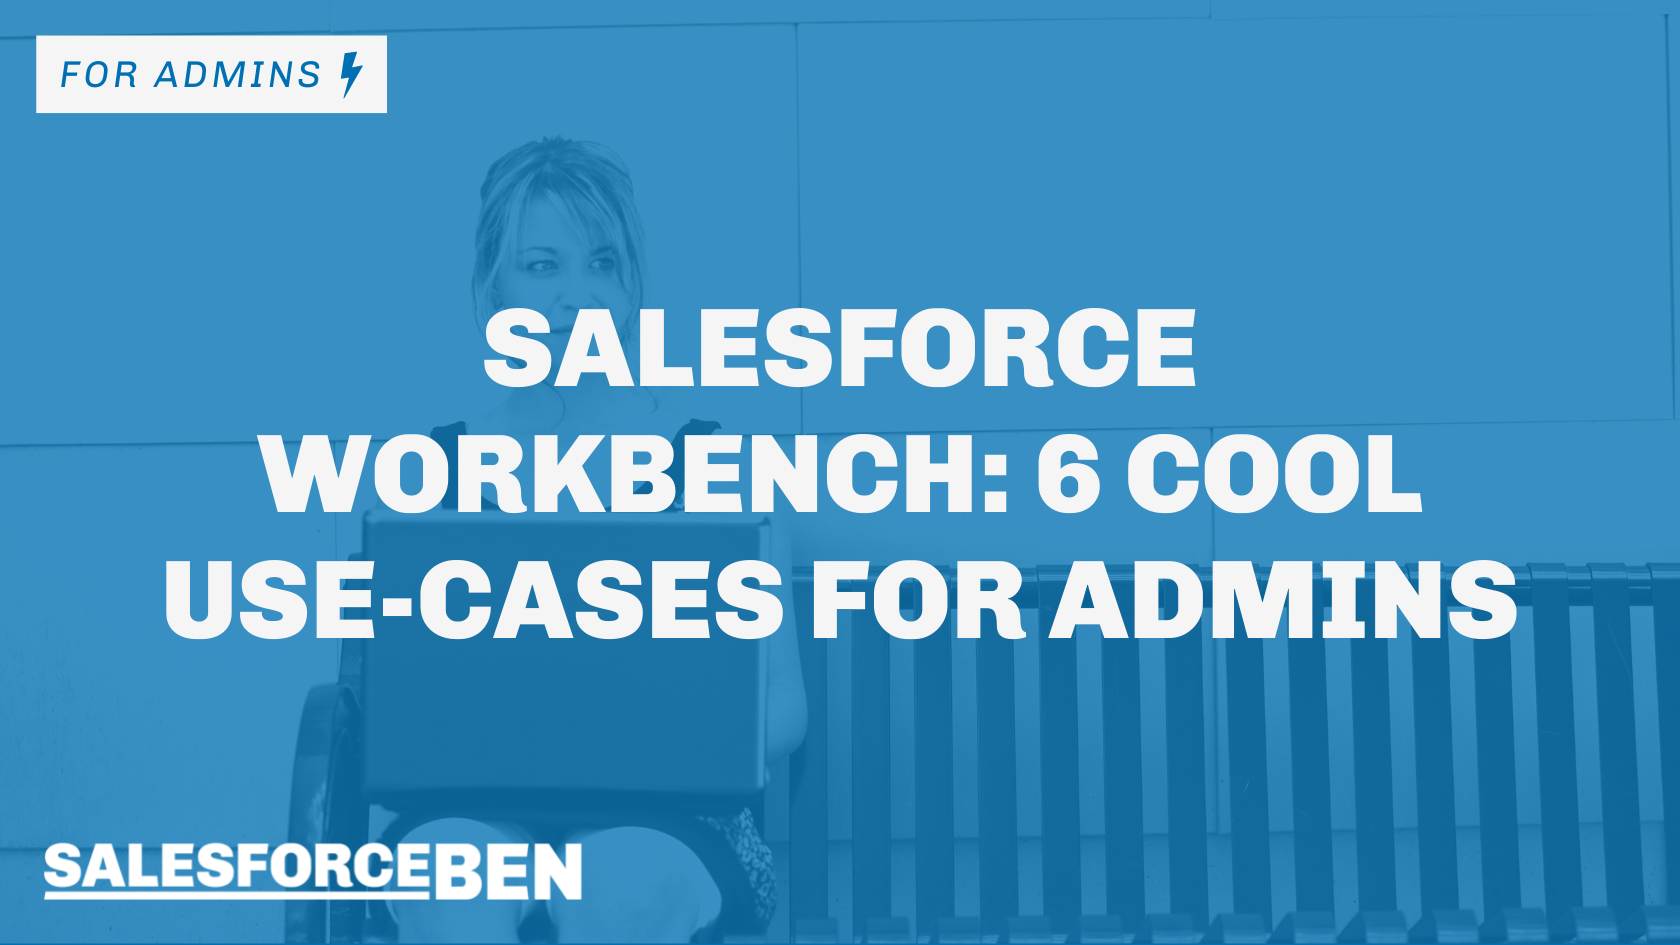 Salesforce Workbench: 6 Cool Use-Cases For Admins